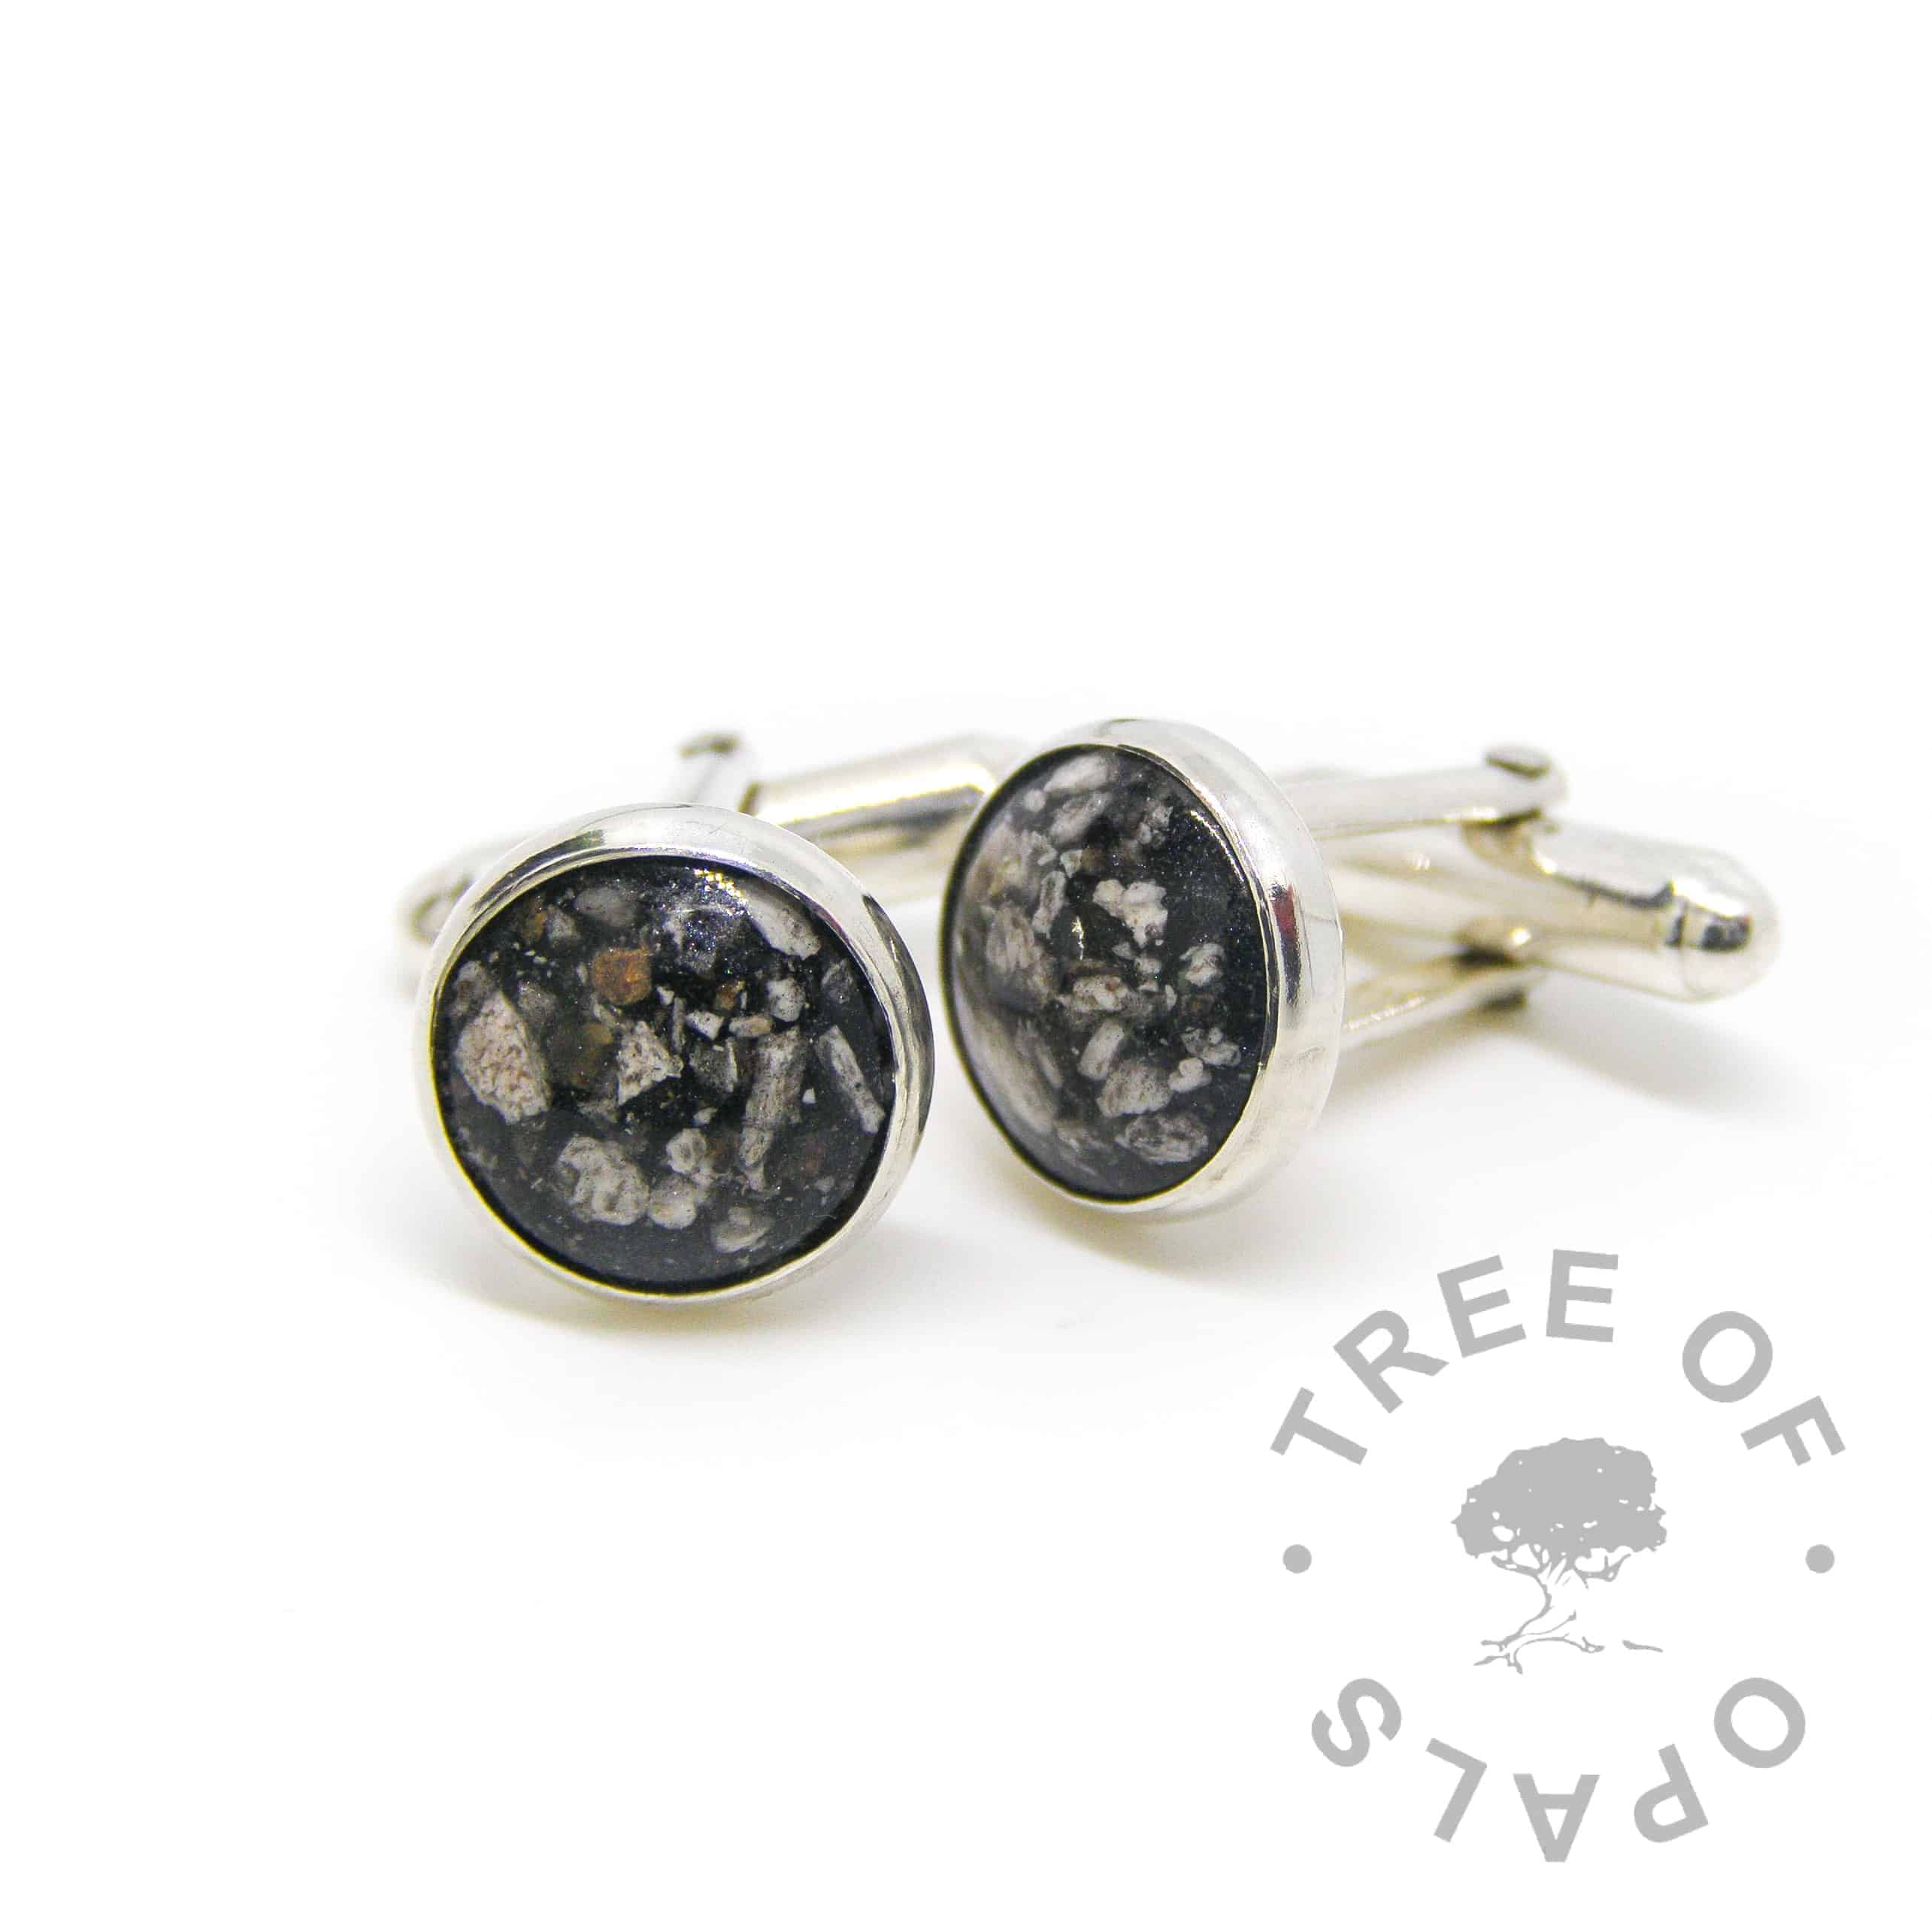 cremation ash cufflinks vampire black sparkle mix, groom jewellery for weddings, solid sterling silver handmade cufflink settings with 12mm cabochons